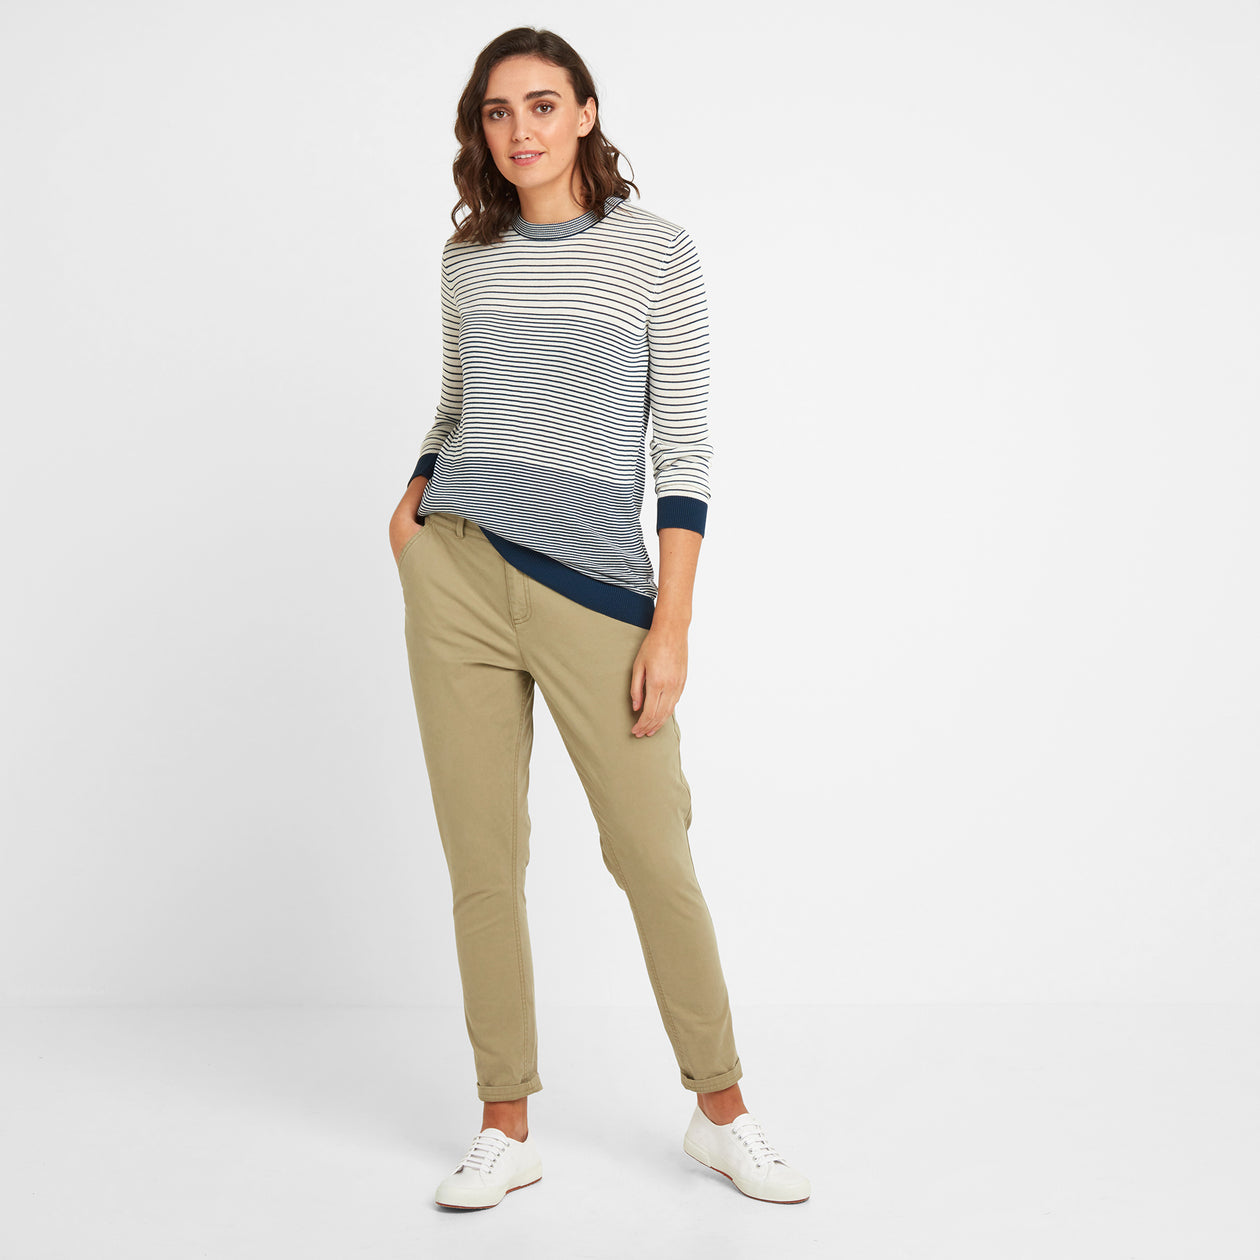 Pickering Womens Trousers Short - Sand image 4